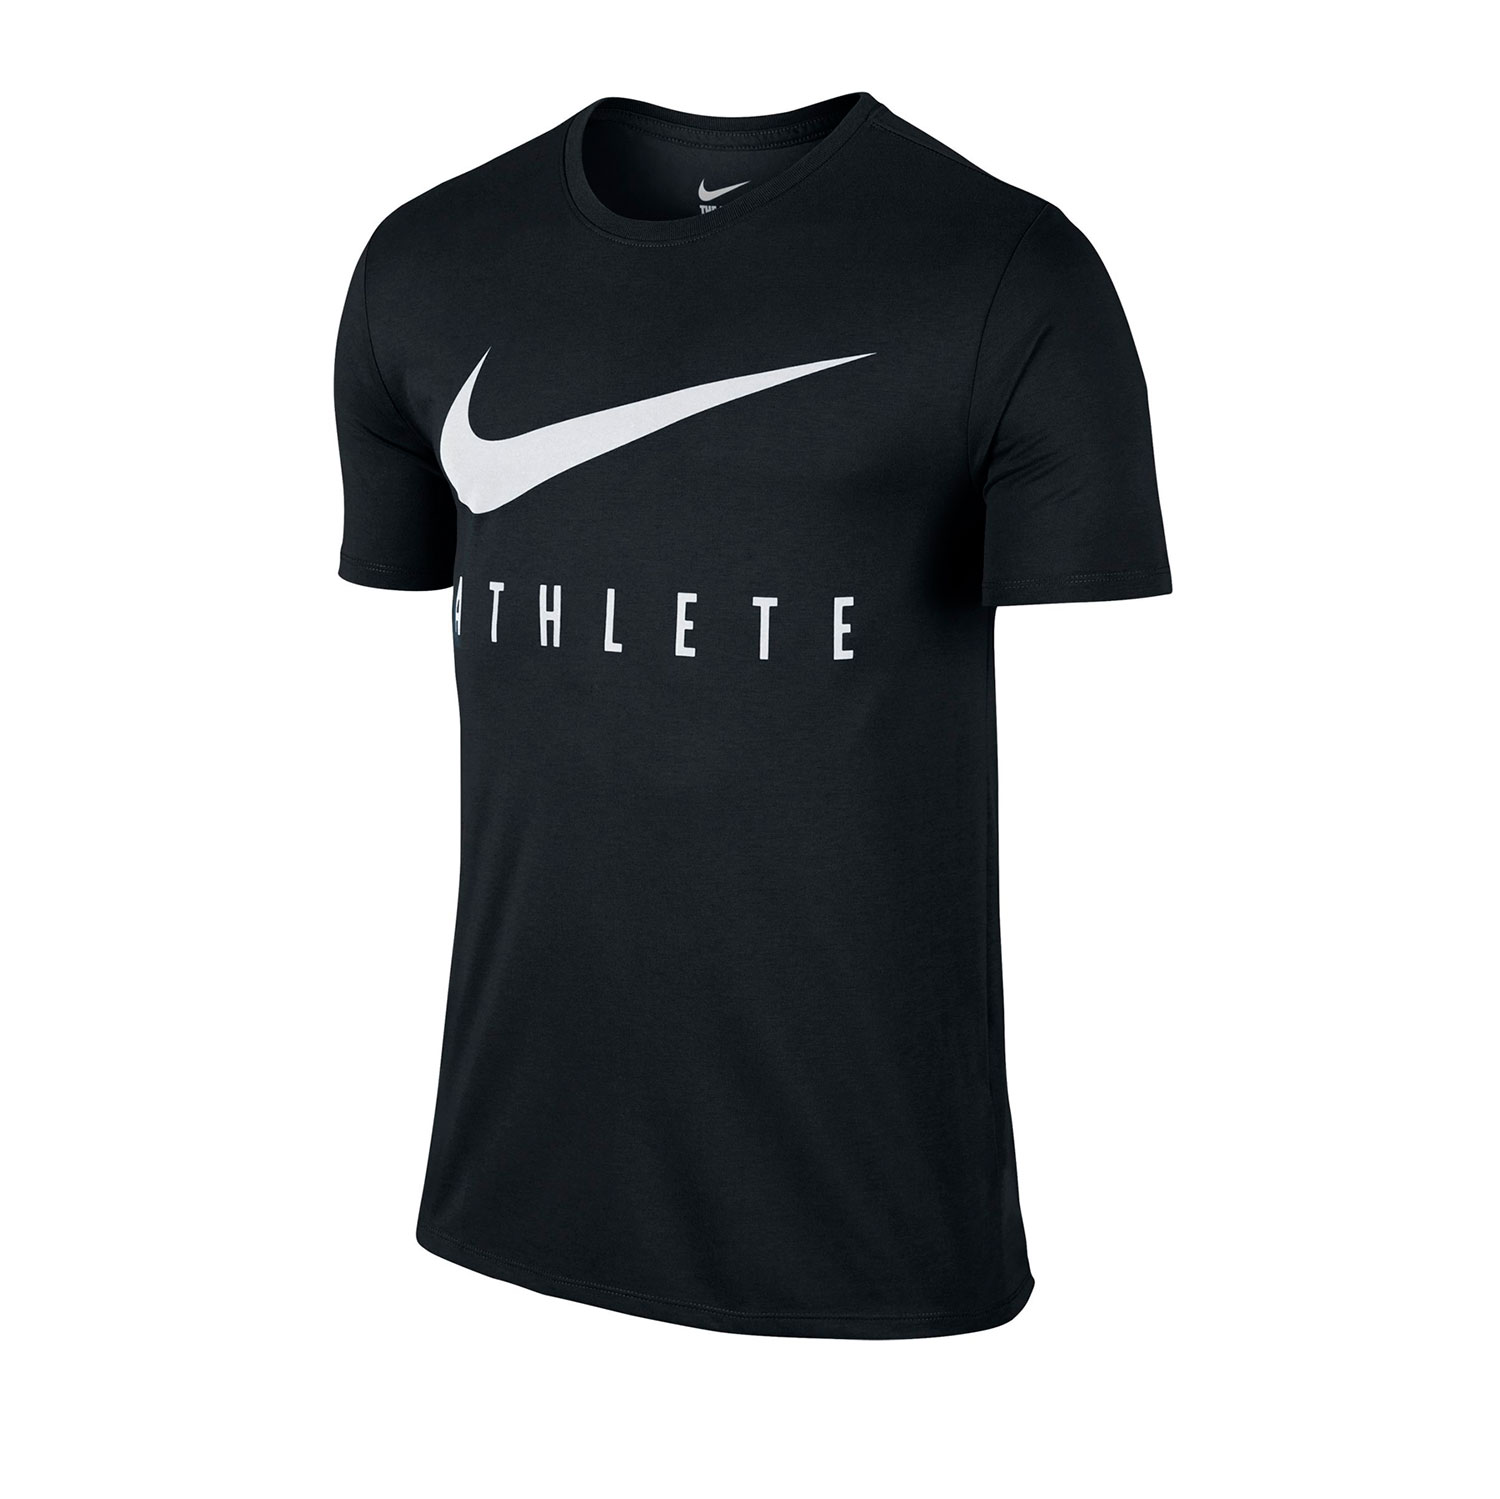 Nike Dri-Fit Swoosh Athlete T-Shirt